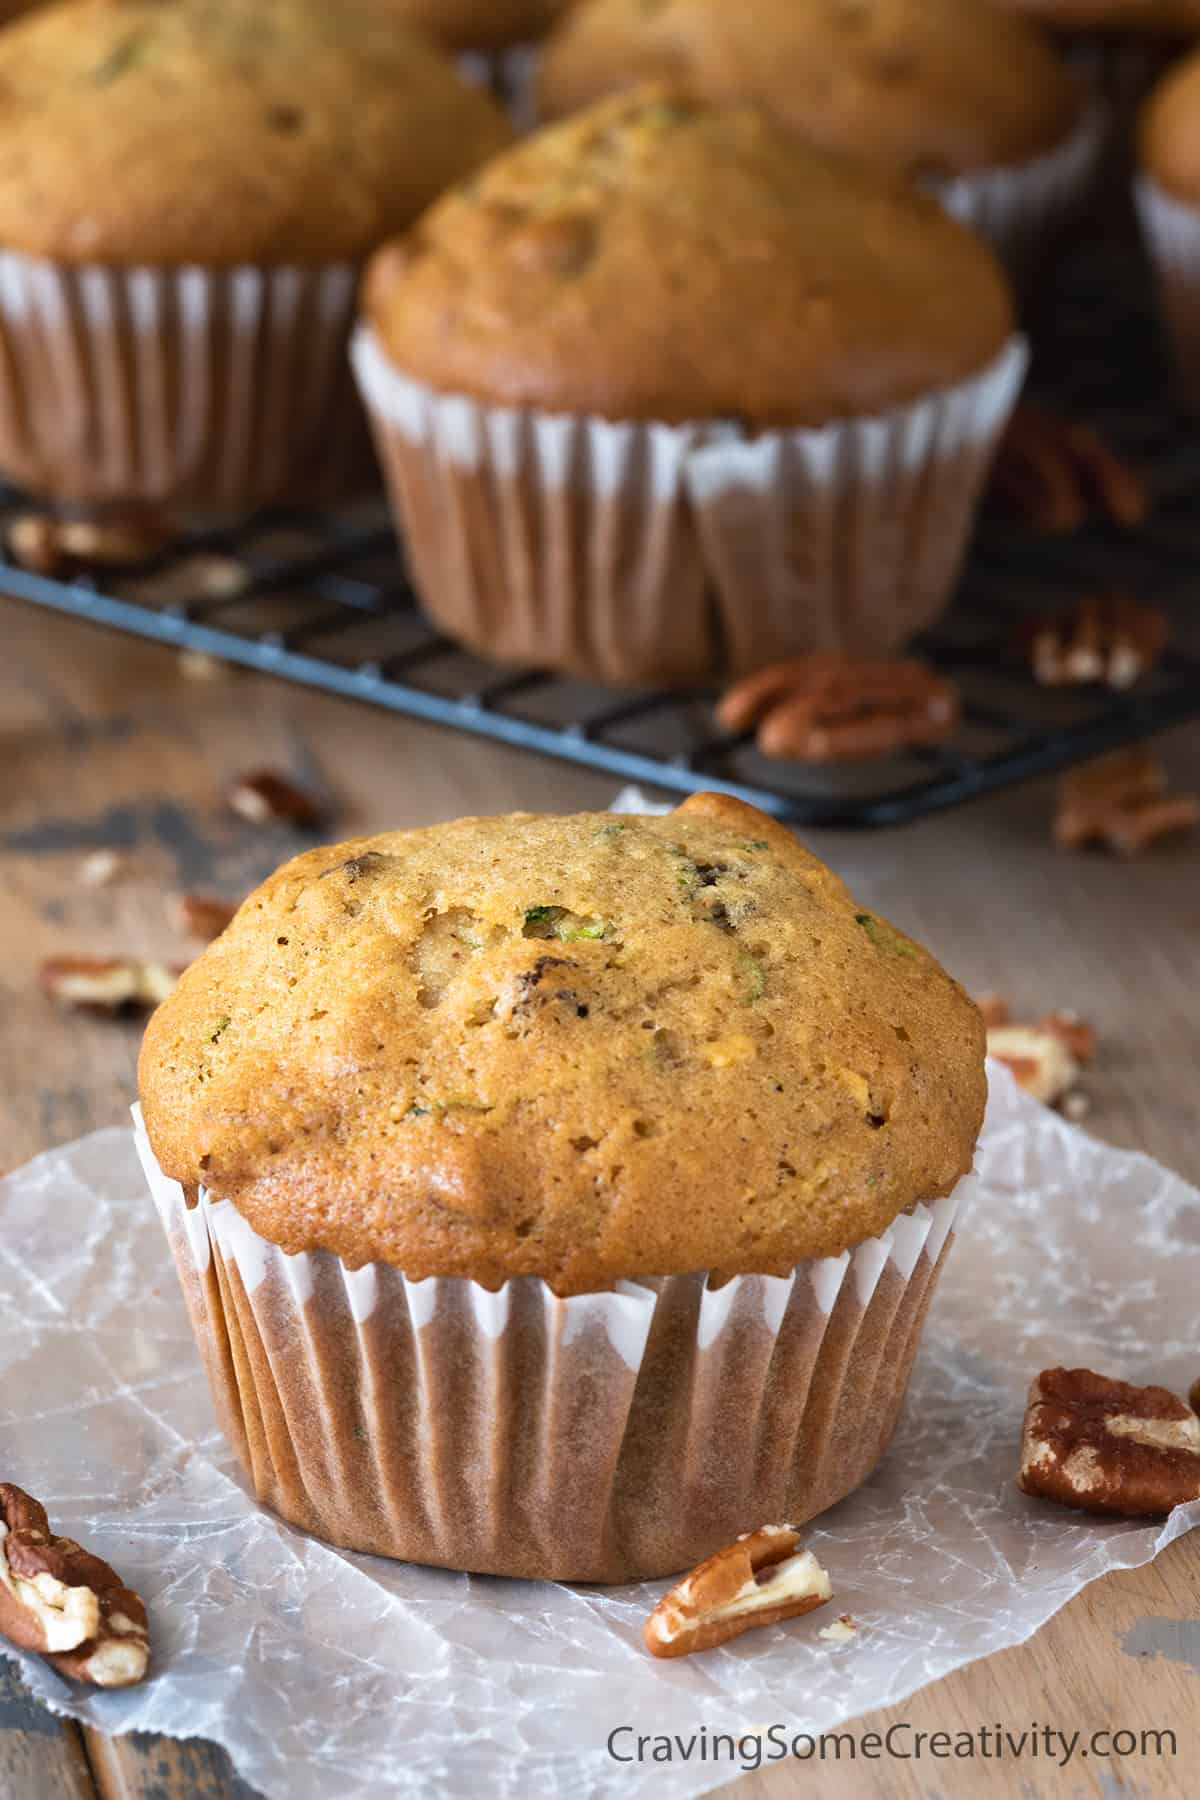 Zucchini muffin in wrapper centered on wood background with several other muffins in the background.